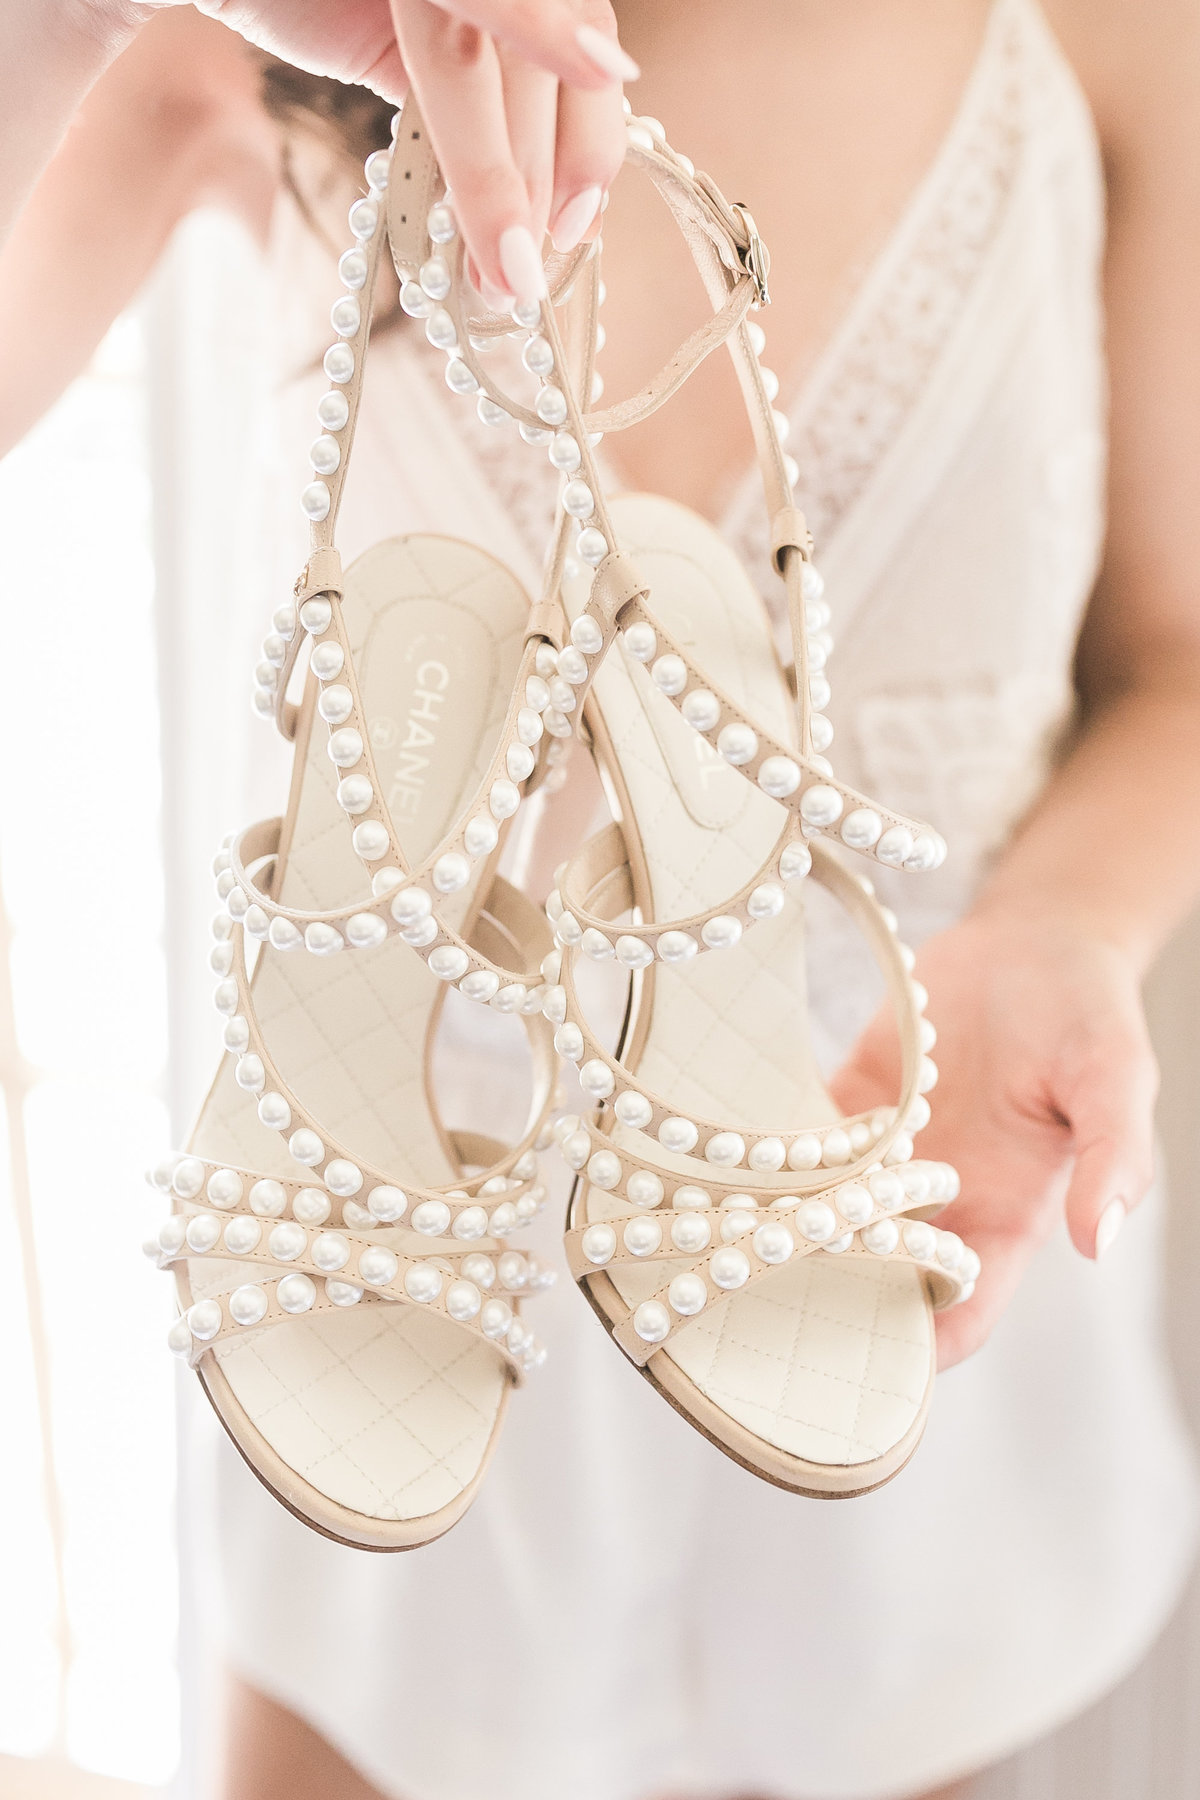 a photo of pearl chanel bride shoes for her wedding day at Green Valley Ranch Resort and Spa in Las Vegas